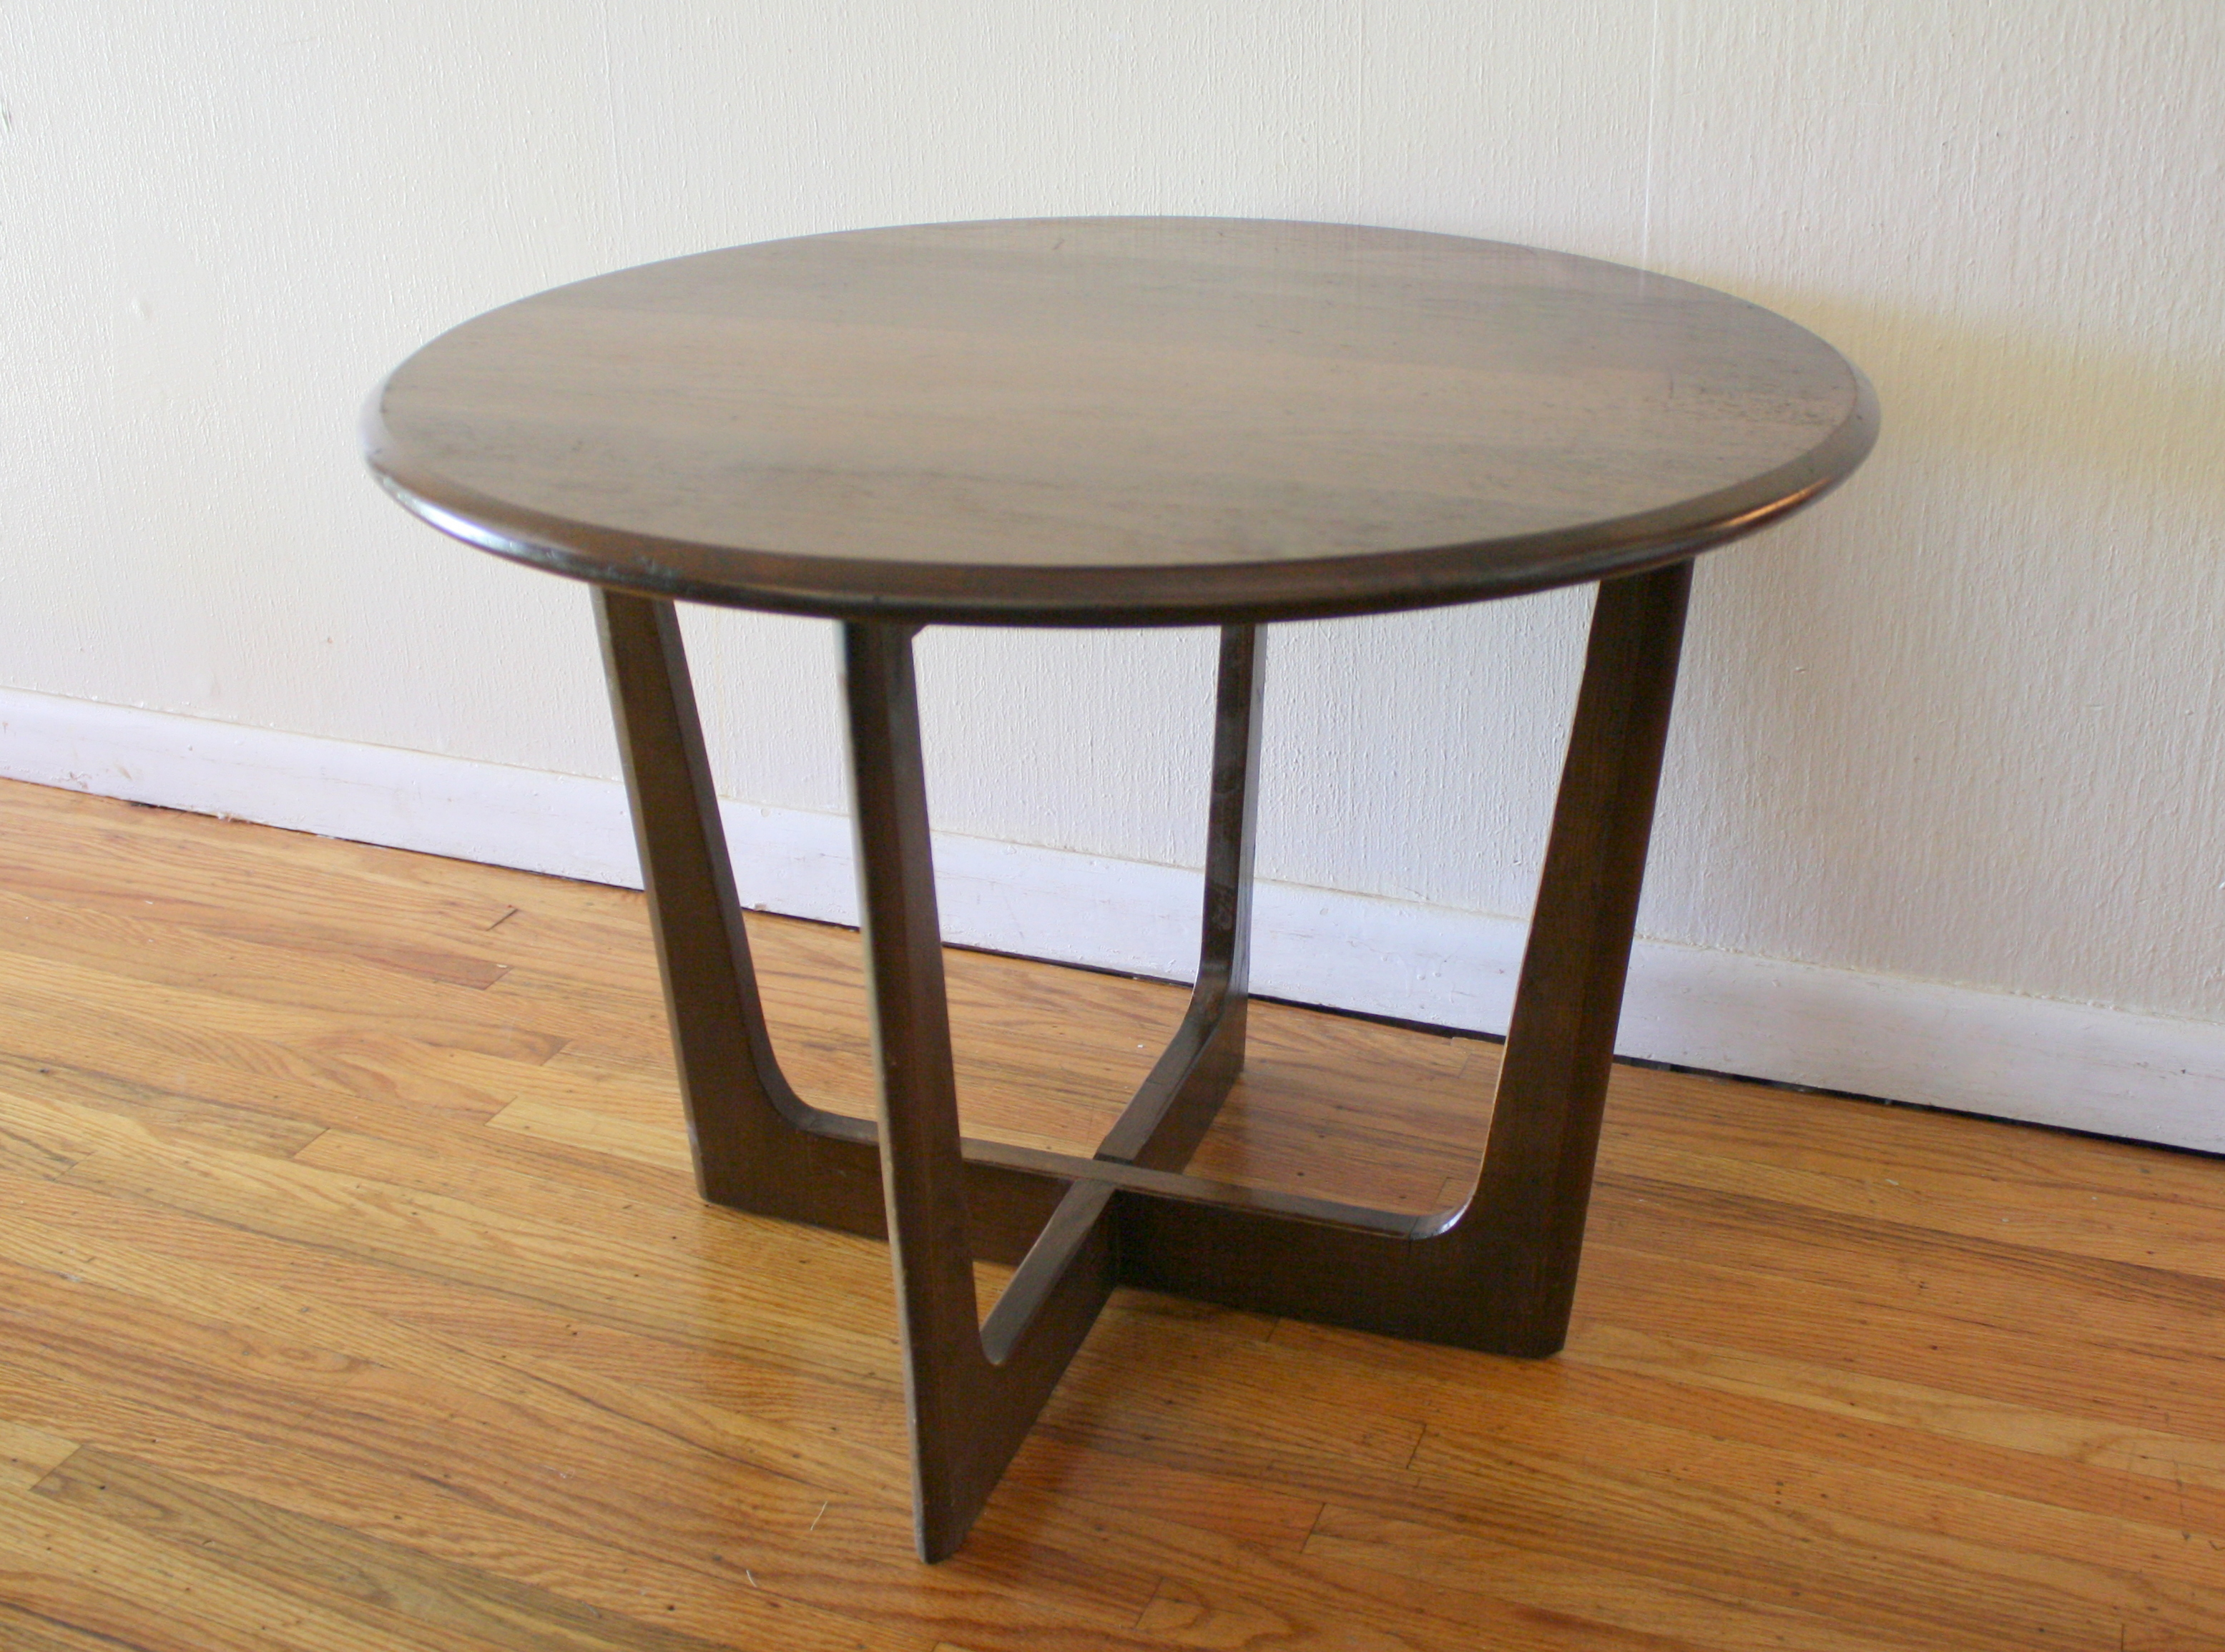 round ked vintage mcm cross base side table end sauder milled cherry panel used furniture cloths wood accent pull out broyhill chairside with usb small attached lamp camouflage